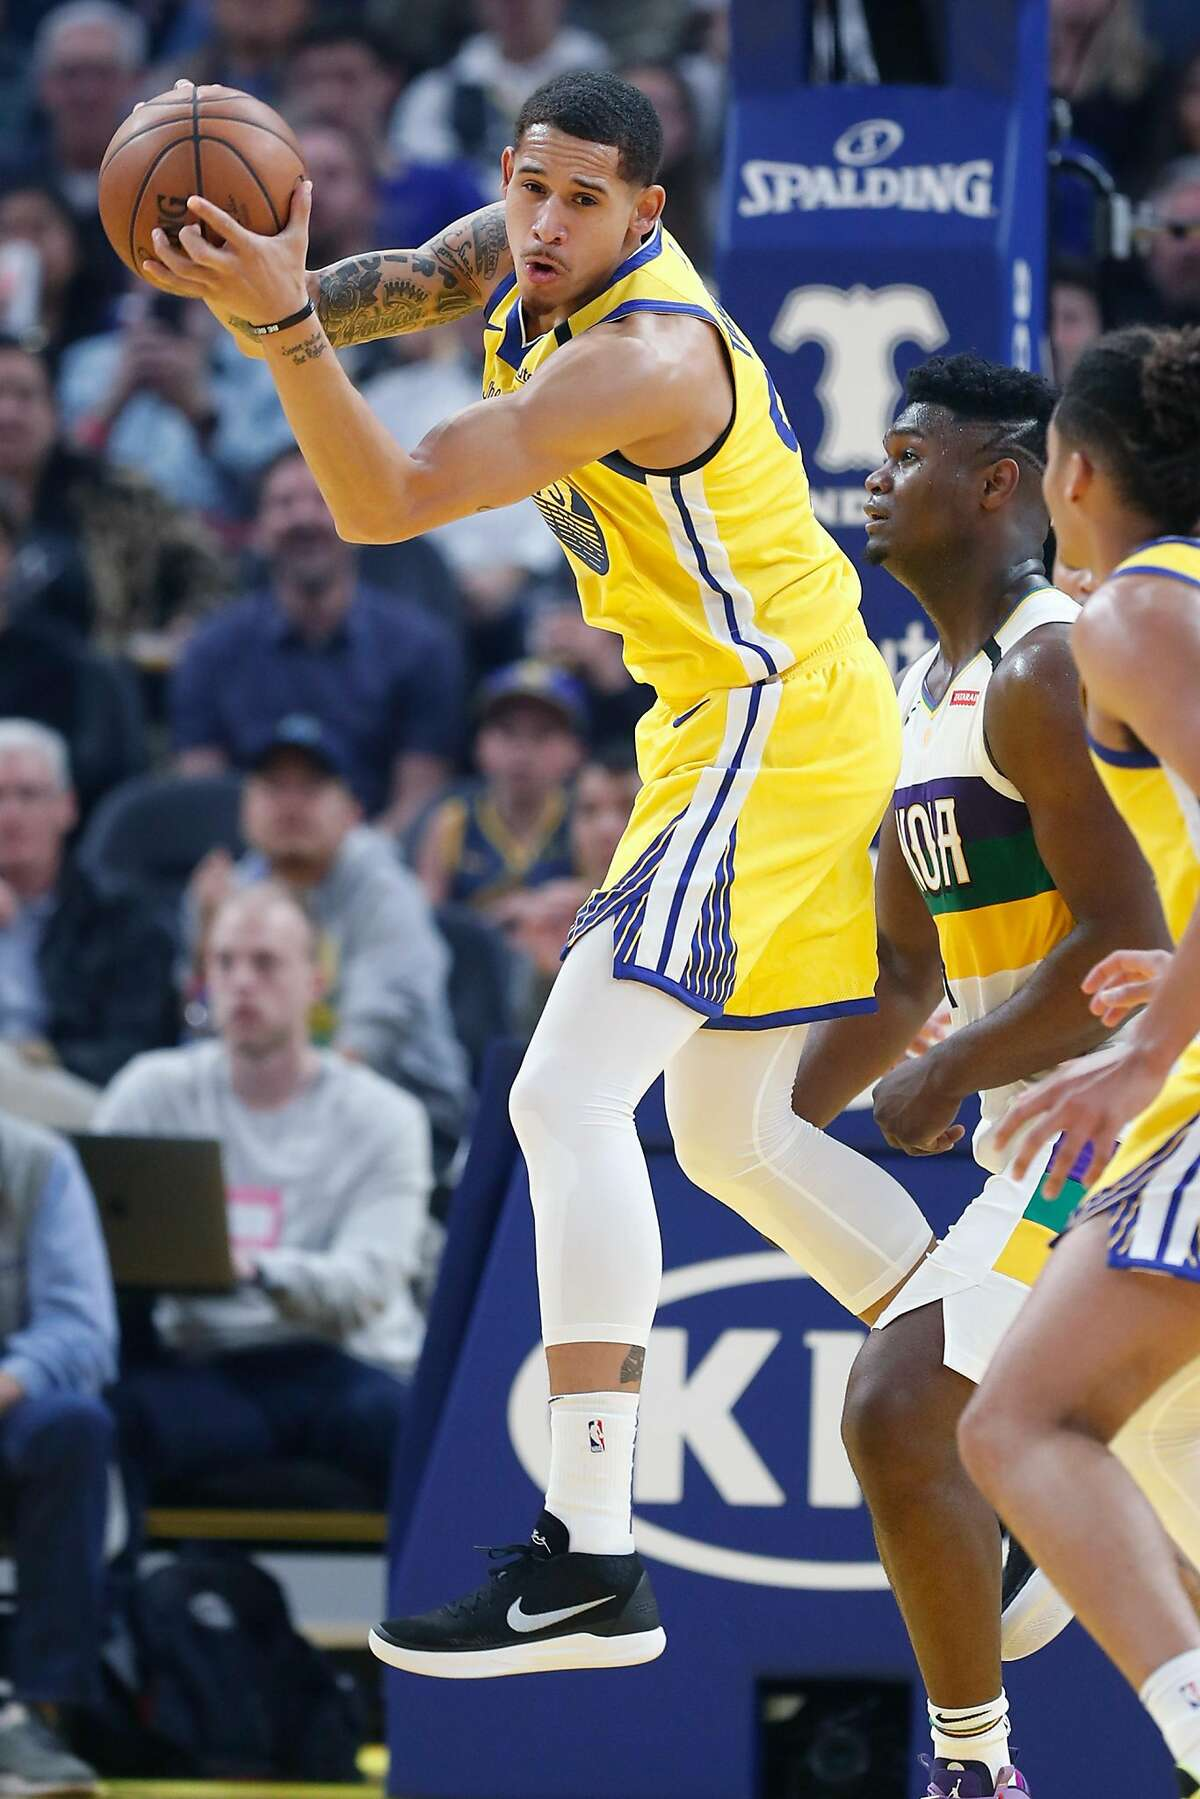 Golden State Warriors' Juan Toscano-Anderson rebounds in front of New Orleans Pelicans' Zion Williamson during Pelican's 115-101 win during NBA game at Chase Center in San Francisco, Calif., on Sunday, February 23, 2020.